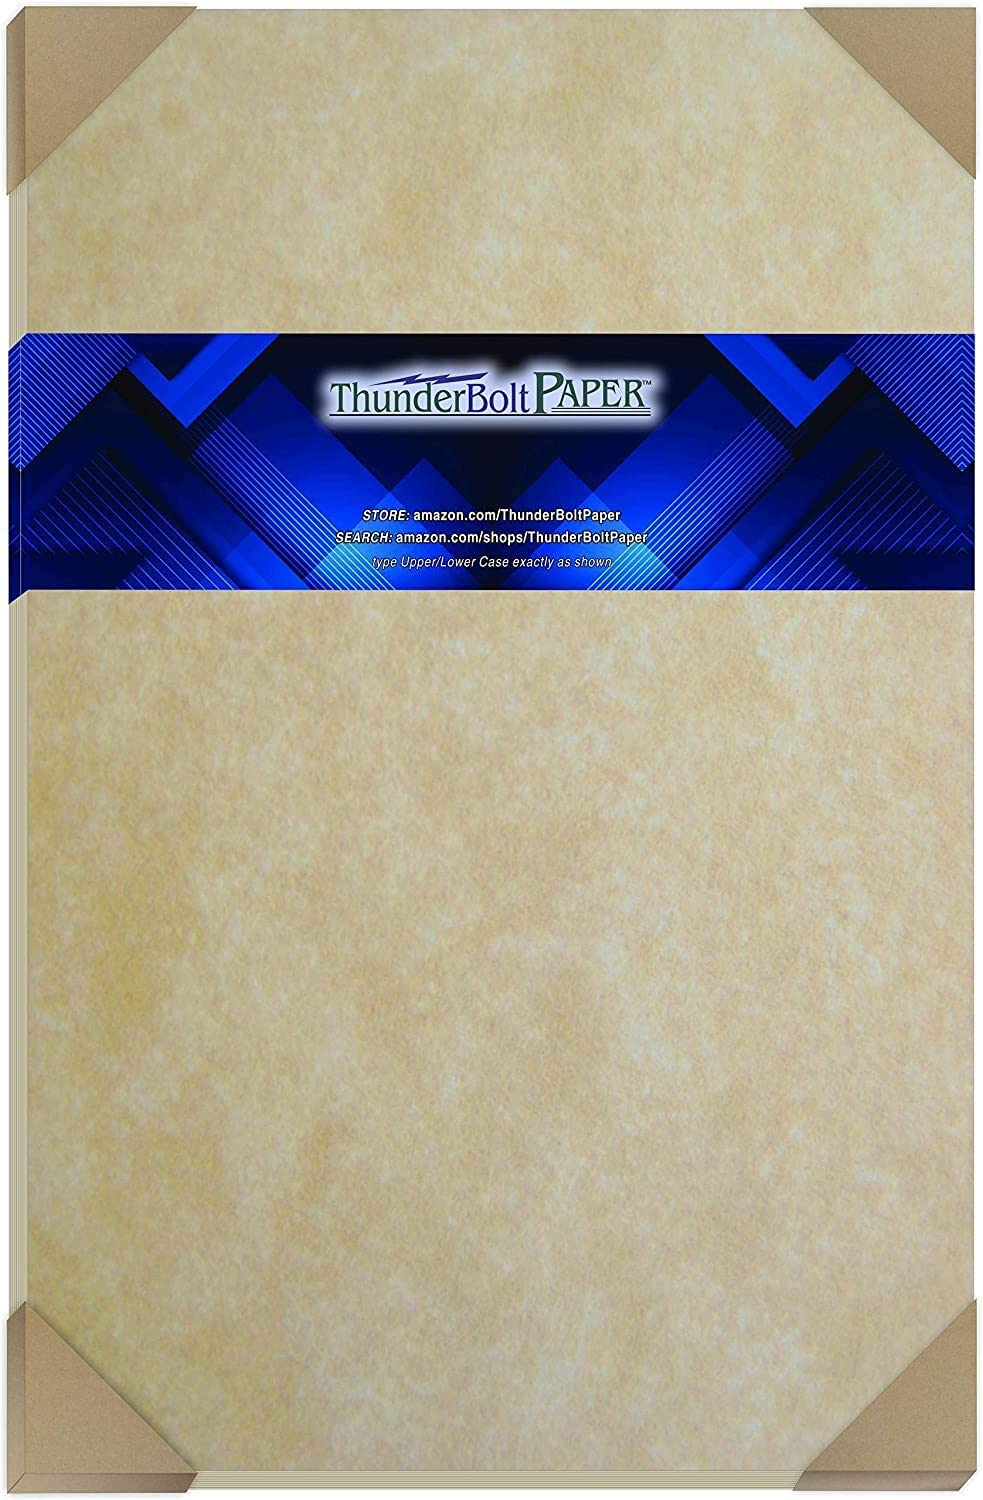 50 Old Age Parchment 65lb Cover Weight Paper 11 X 17 Inches Cardstock Colored Sheets Tabloid|Ledger Size -Printable Old Parchment Look